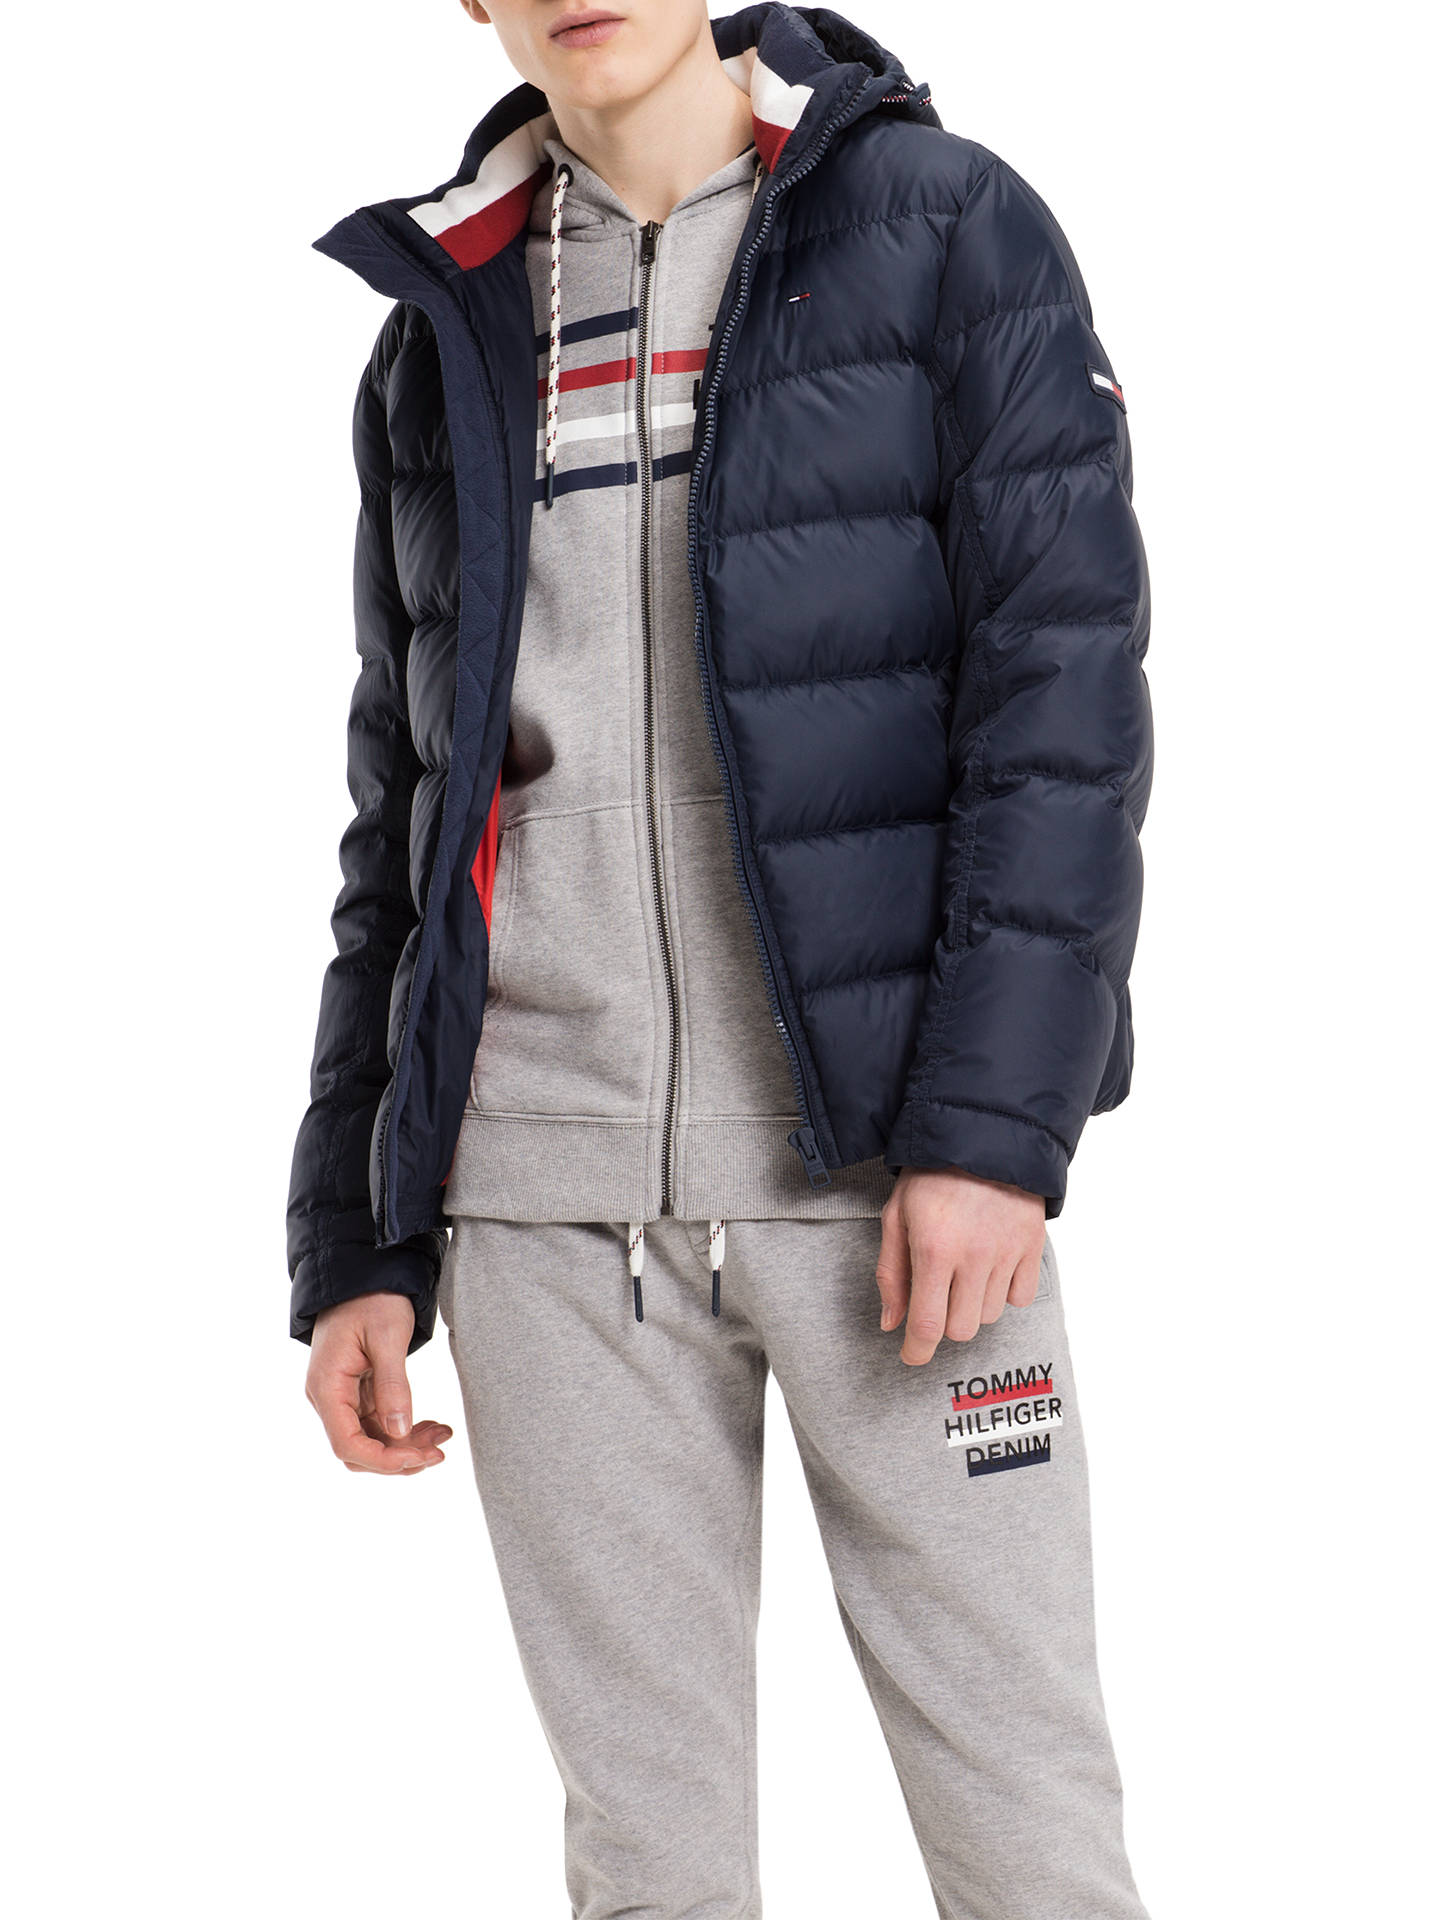 6d48713ed Buy Tommy Jeans Basic Down Jacket, Multi/Navy, S Online at johnlewis.